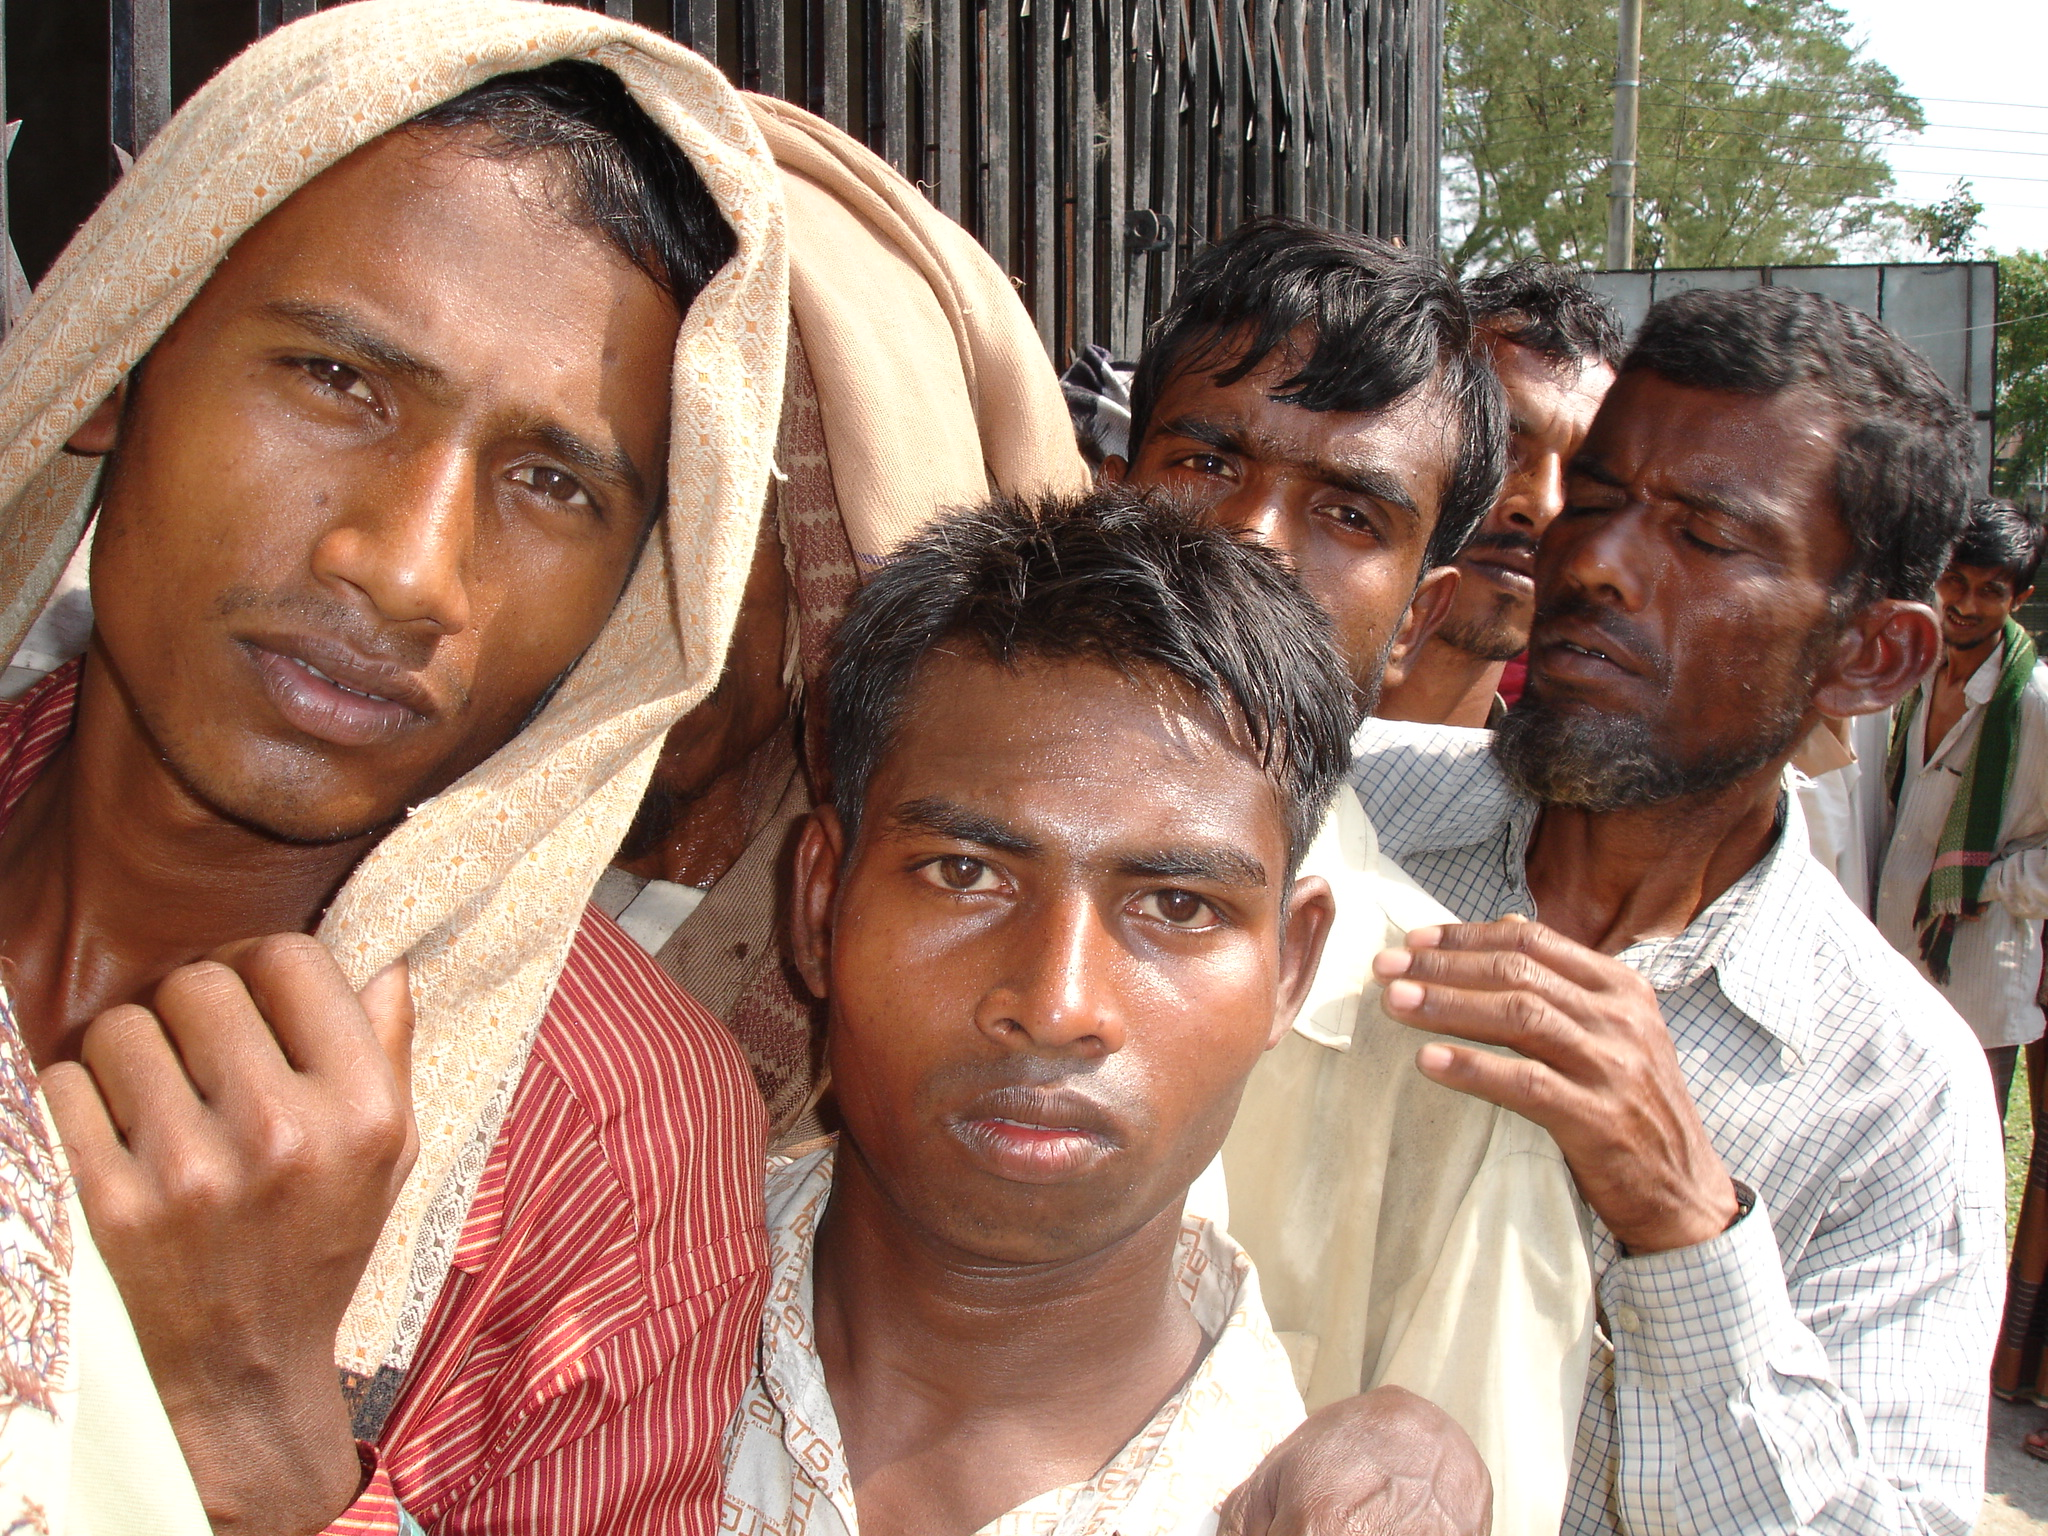 Men queue up for much needed government relief in Patuakhali District, southern Bangladesh, in the wake of Cyclone Sidr on 15 November. More than 3,000 people were killed when the category four storm struck the country's coastal belt.